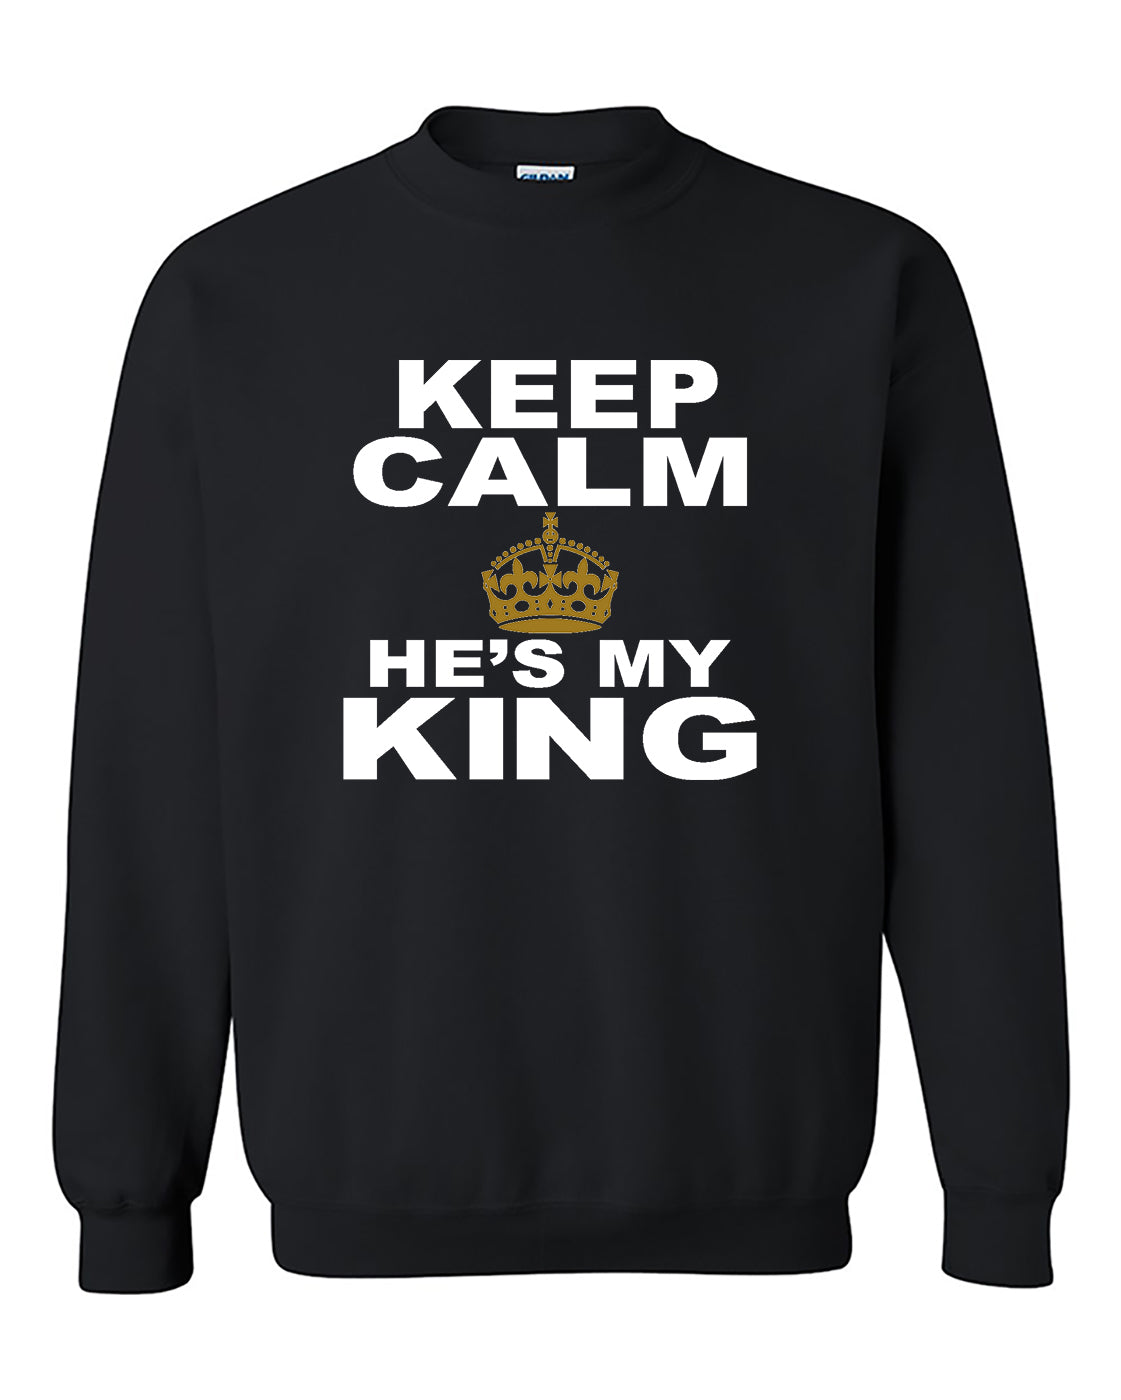 Keep Calm, He's My King Couples Matching Valentine's Day Gift Couples Crewneck Sweater